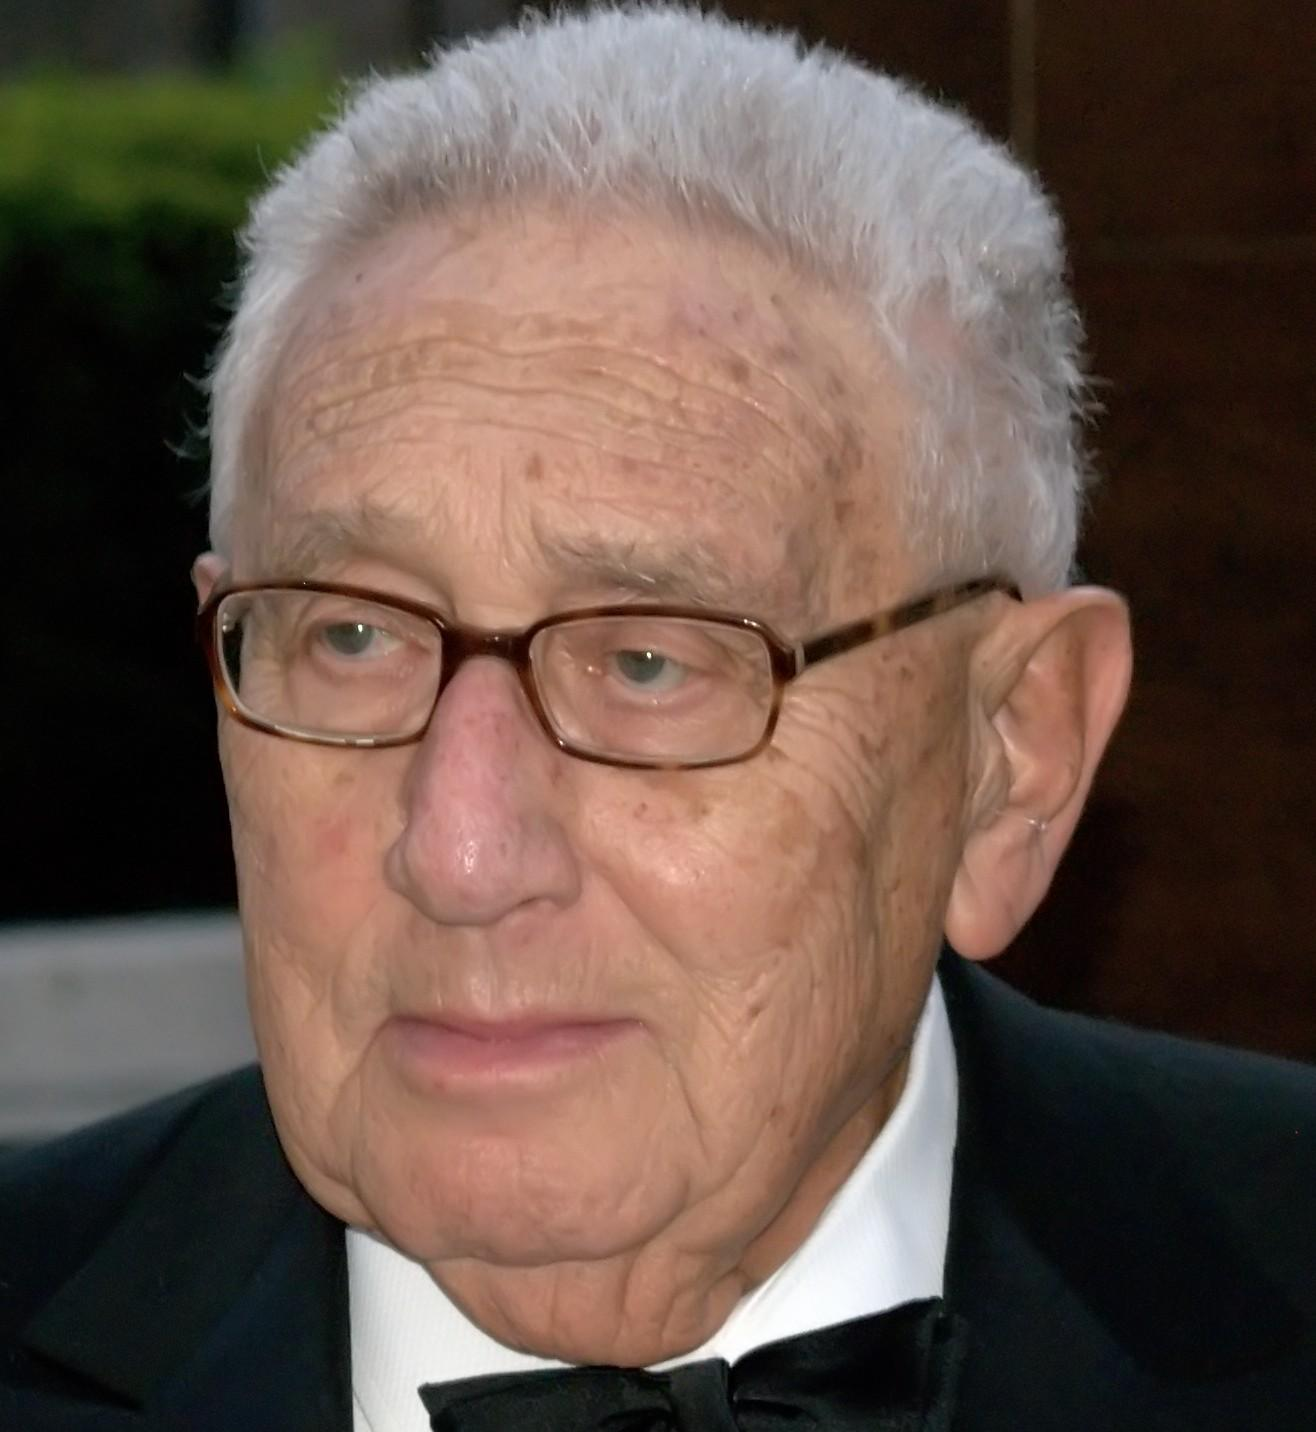 henry kissinger doctoral dissertation A world restored metternich, castlereagh and the a world restored metternich, castlereagh and the on his dissertation, henry kissinger was like.